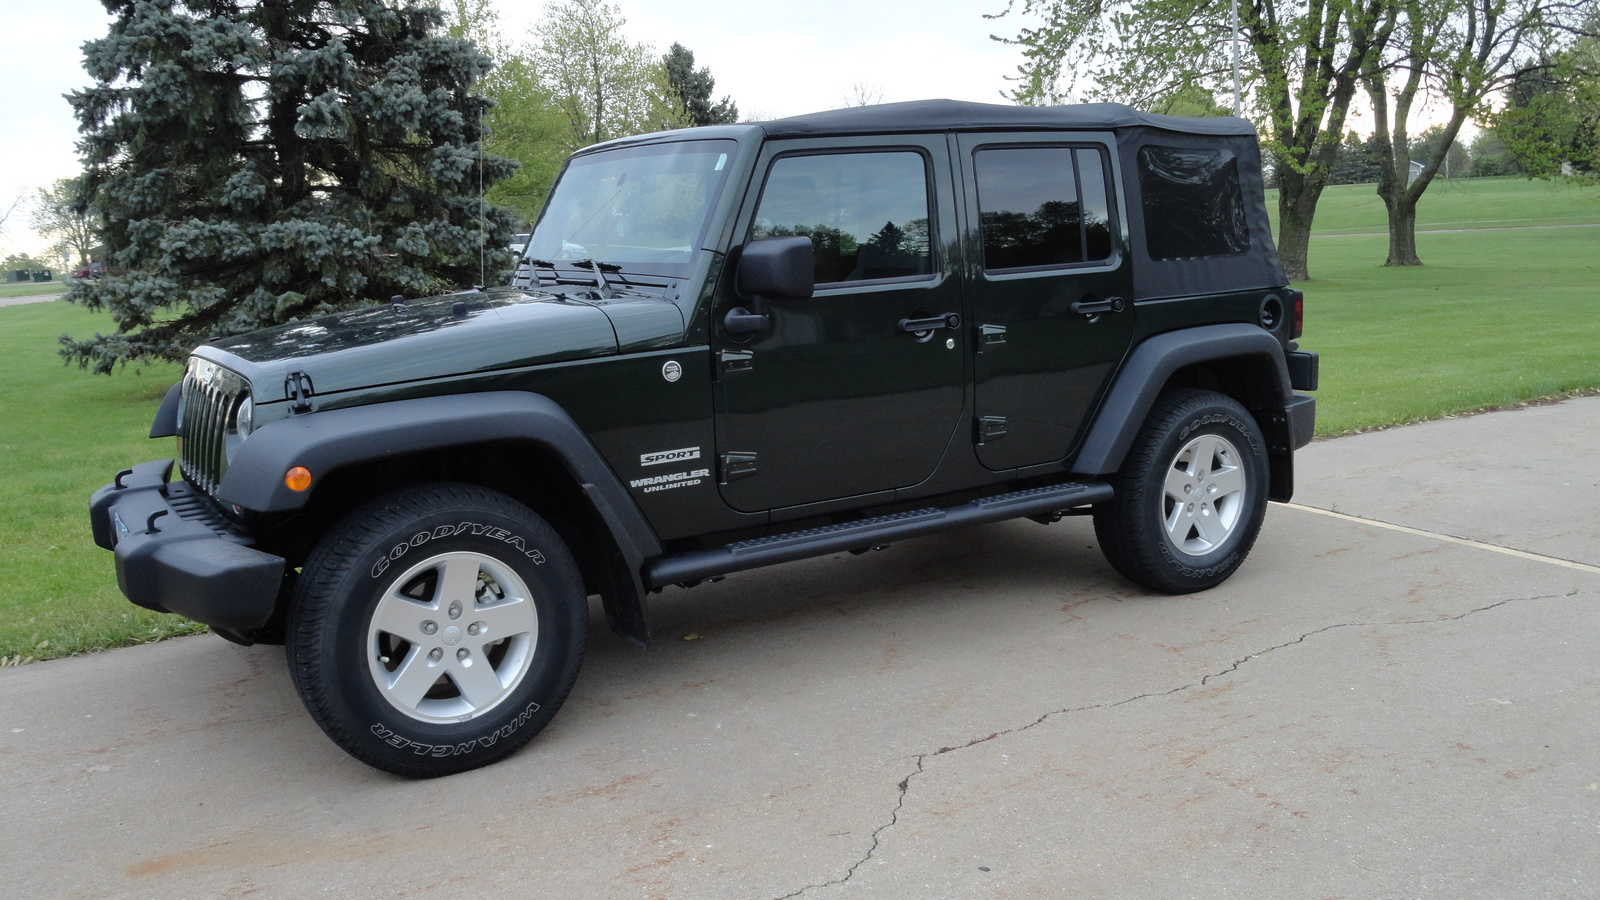 2010 jeep wrangler unlimited sport 4wd picture exterior. Cars Review. Best American Auto & Cars Review